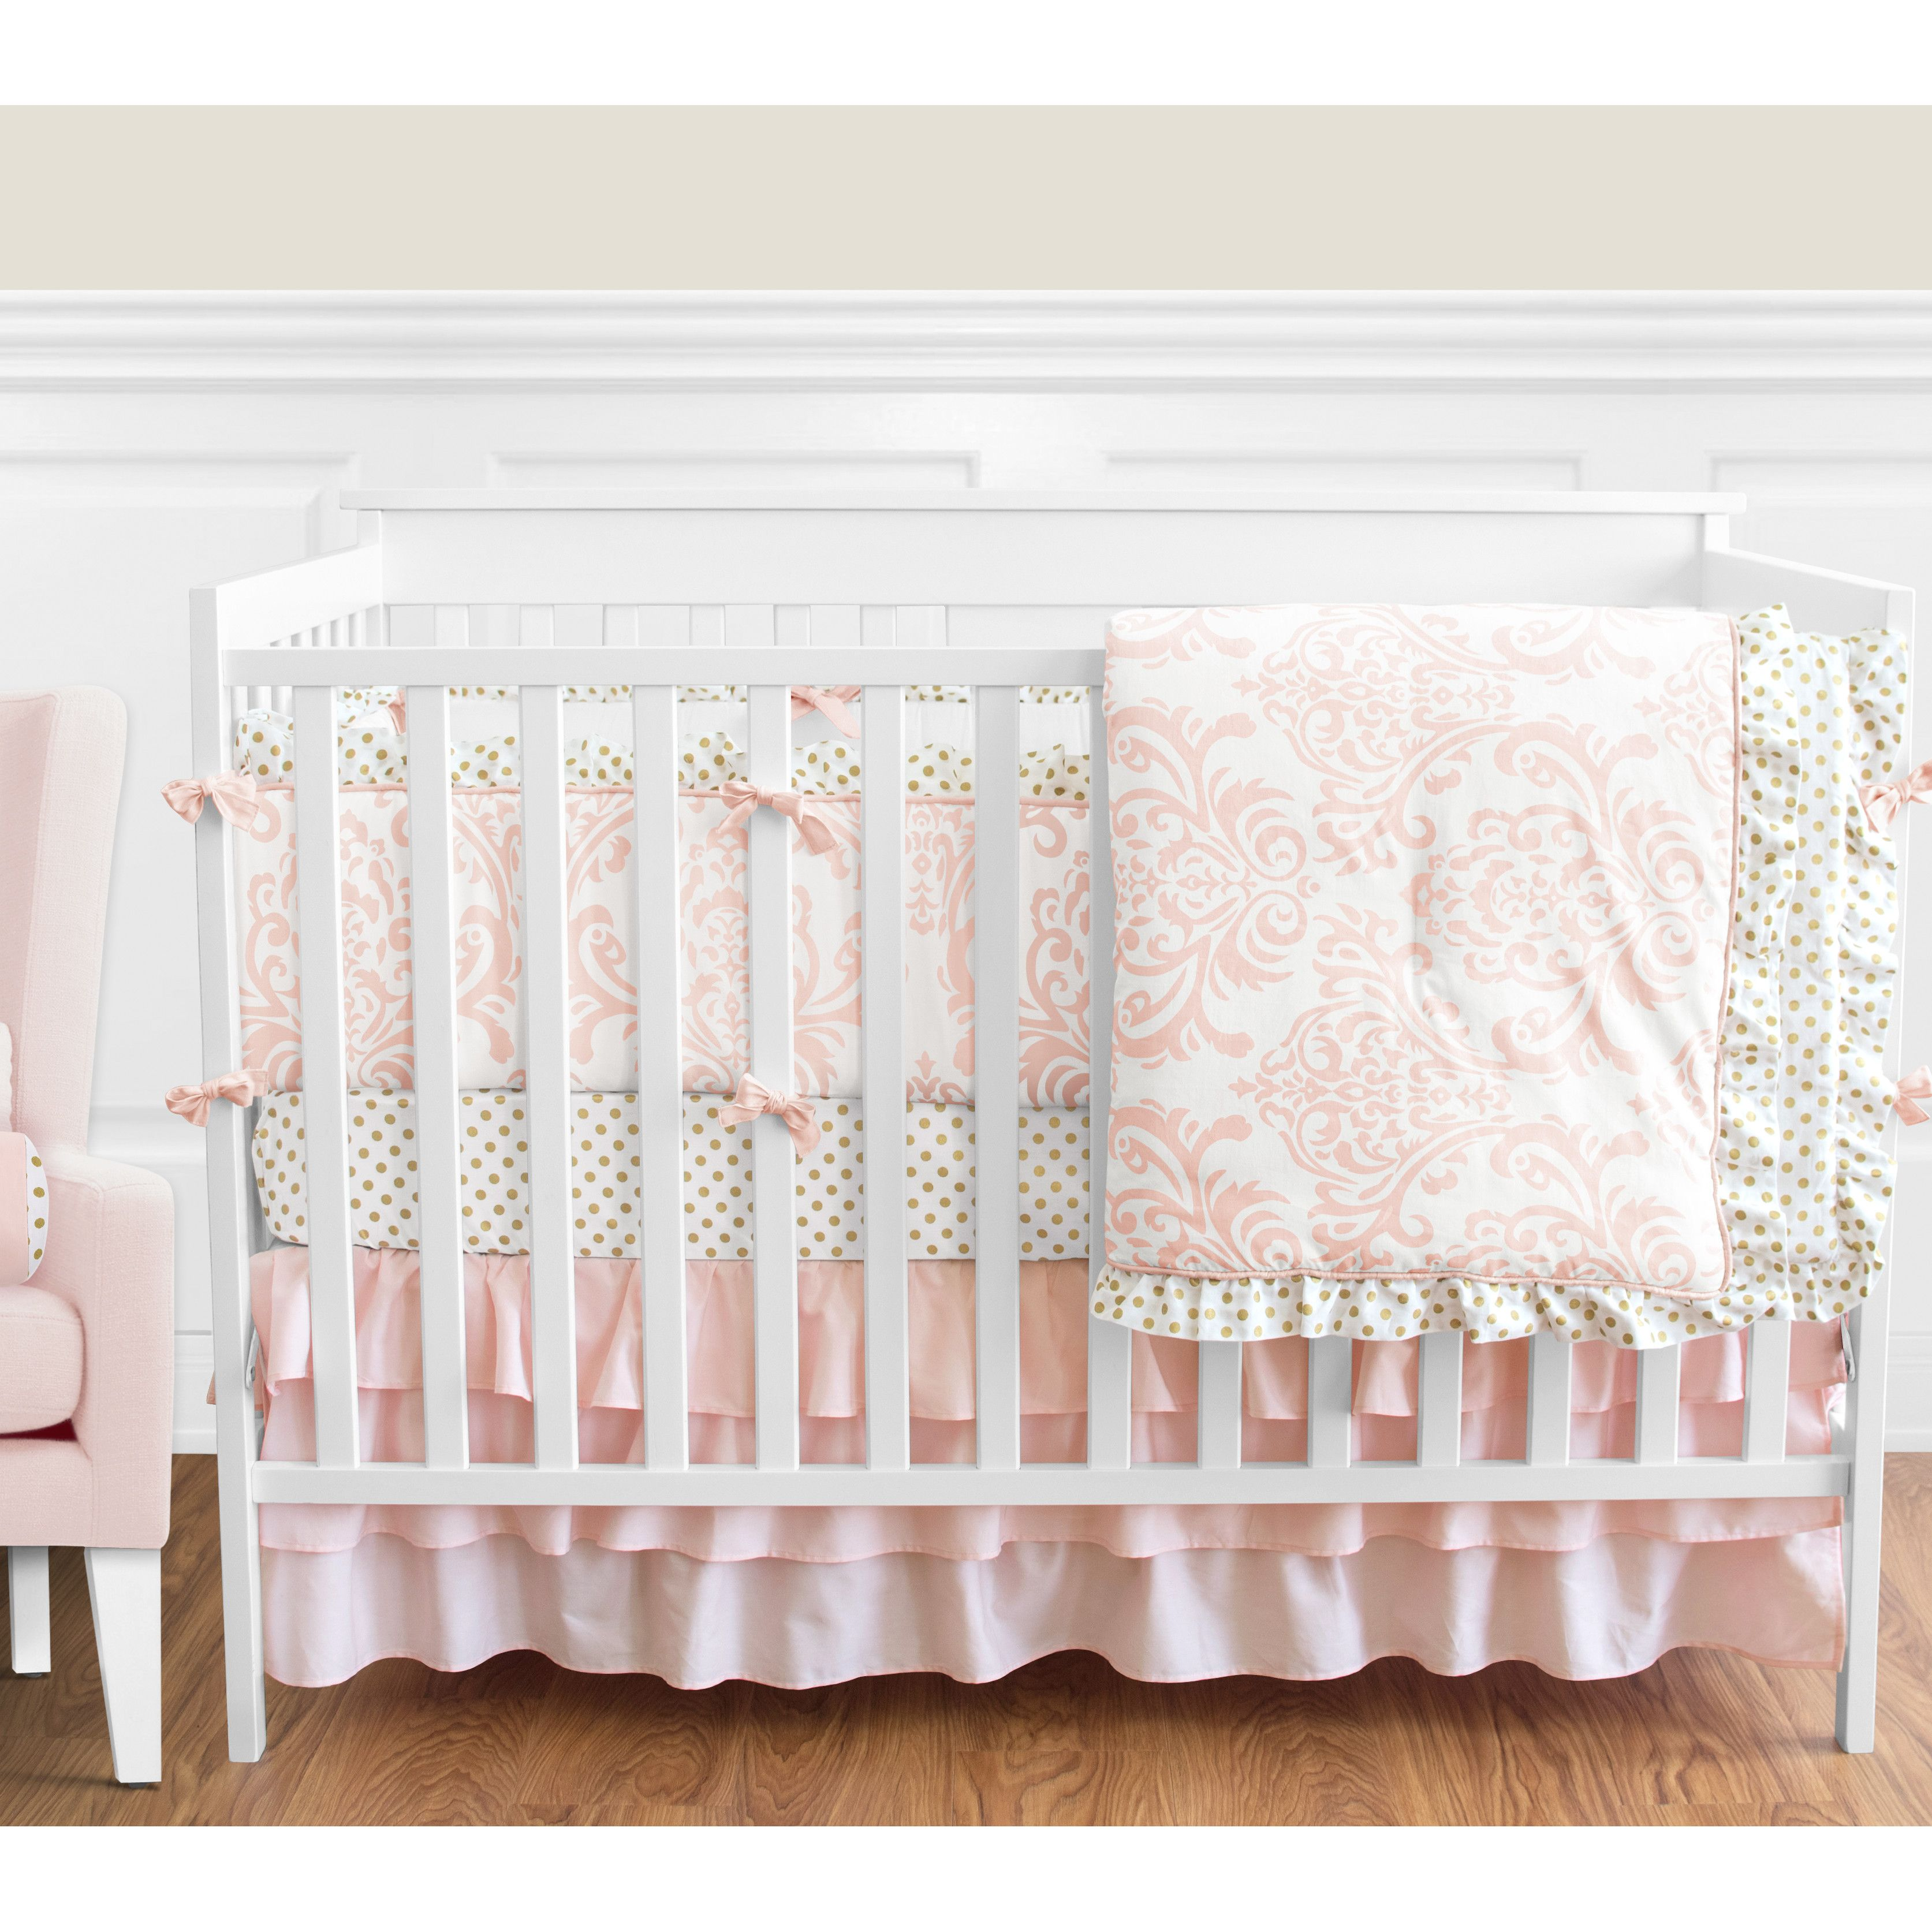 set qlt collection cribs sweet prod butterfly and bedding purple hei wid pink crib p jojo designs